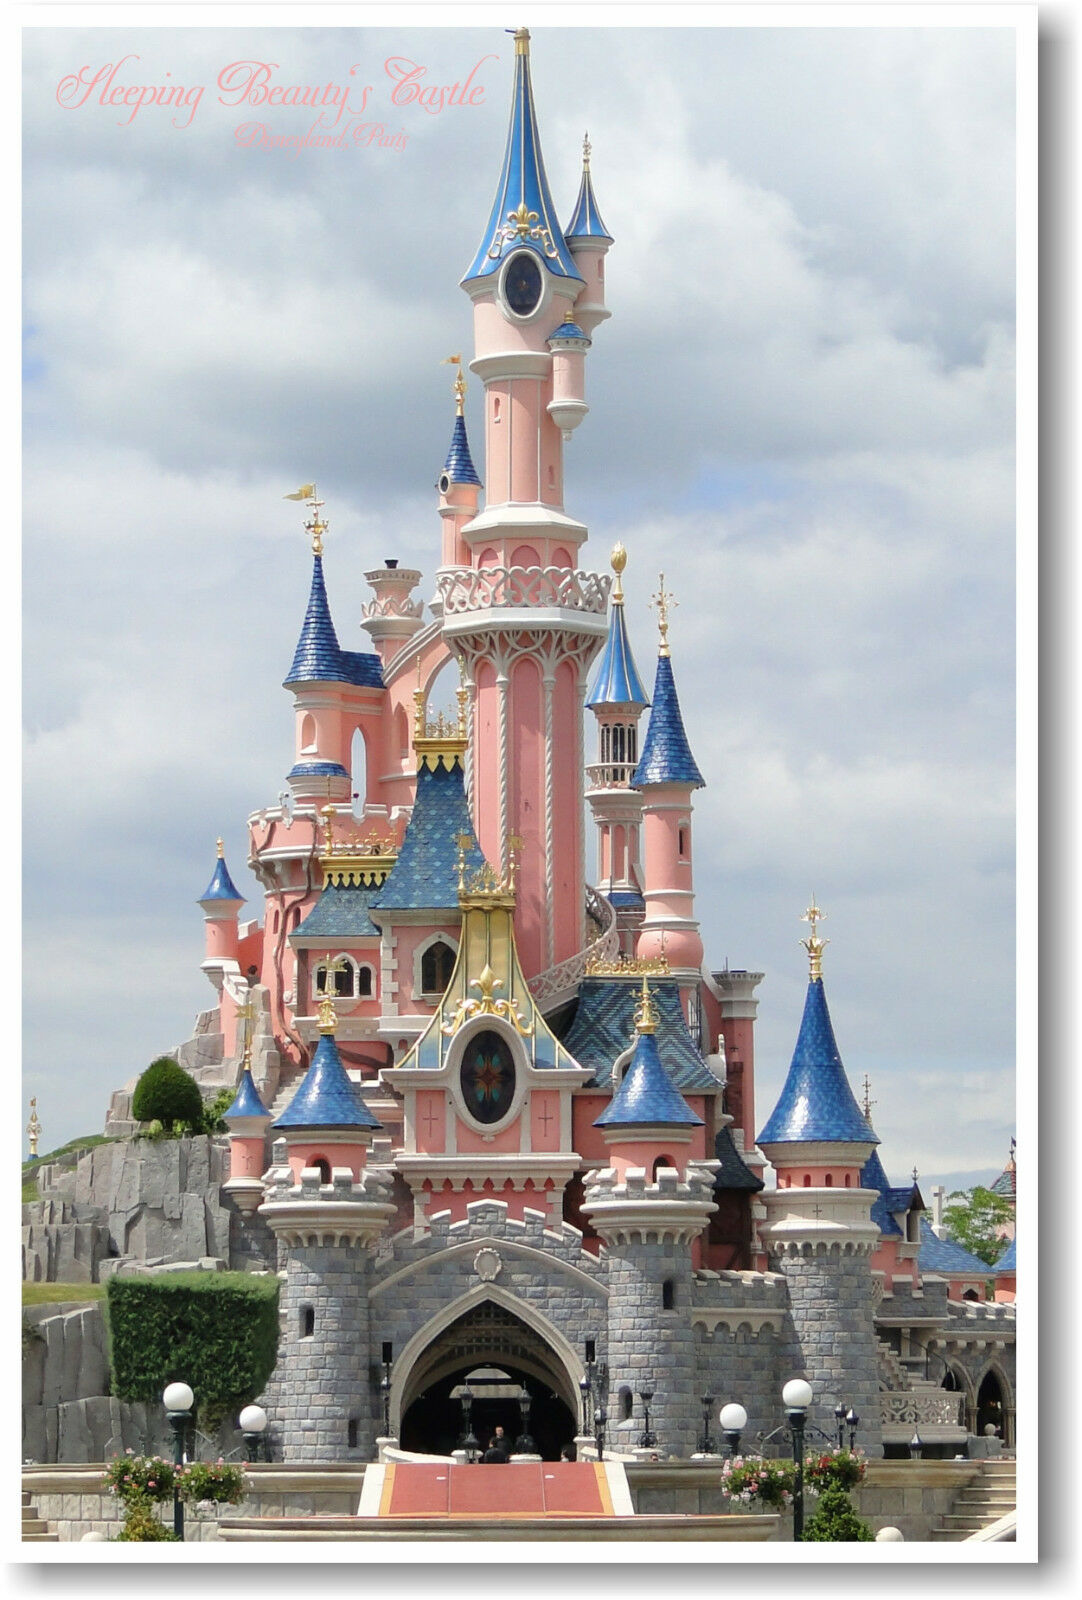 Sleeping Beauty Castle Disneyland Paris Euro Disney